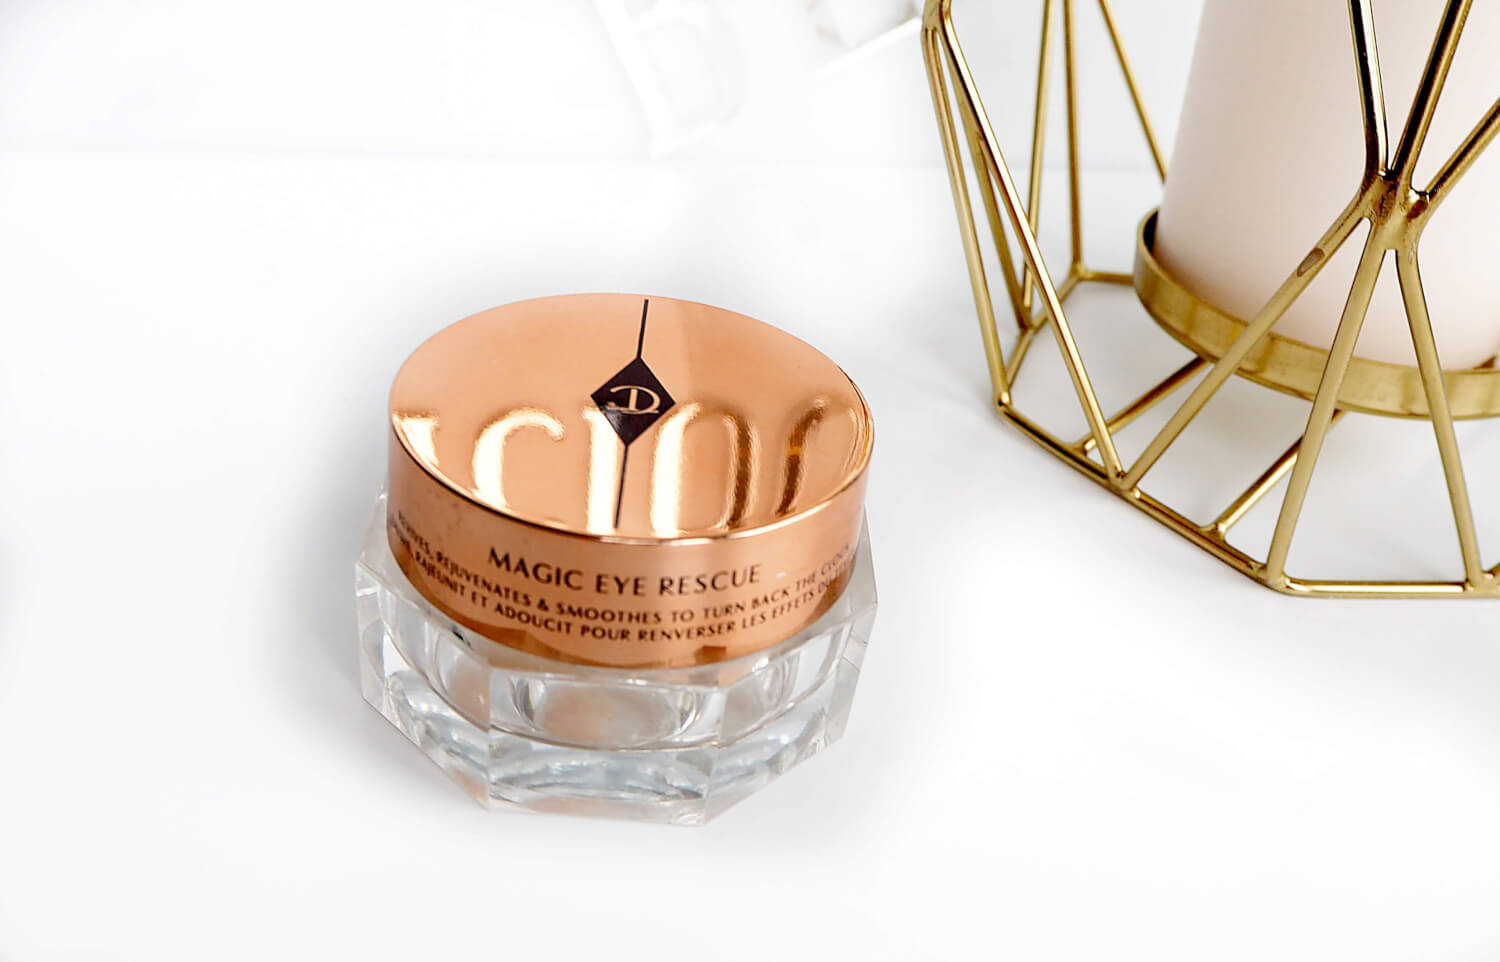 MAGIC EYE RESCUE Charlotte Tilbury